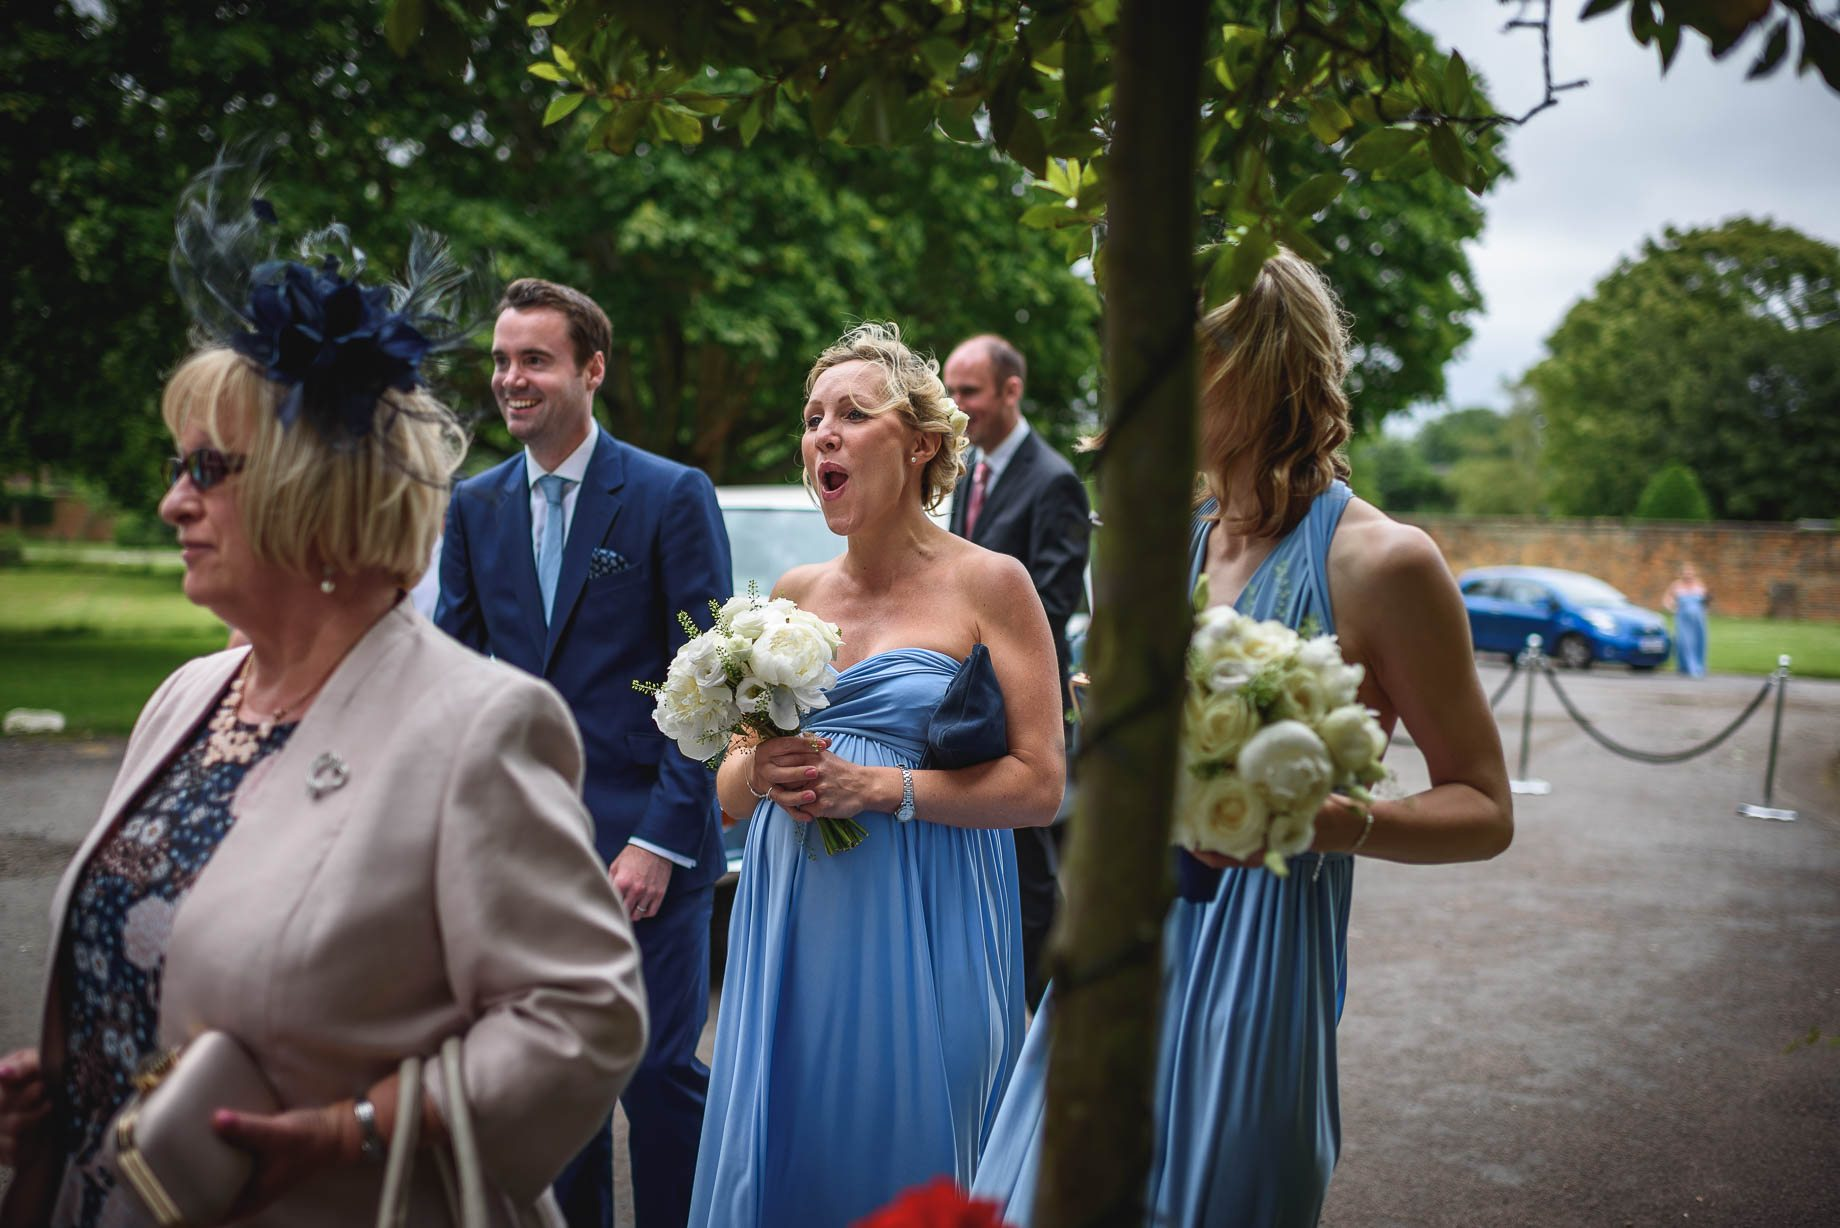 Hertfordshire wedding photography - Sarah and Stephen by Guy Collier Photography (88 of 161)